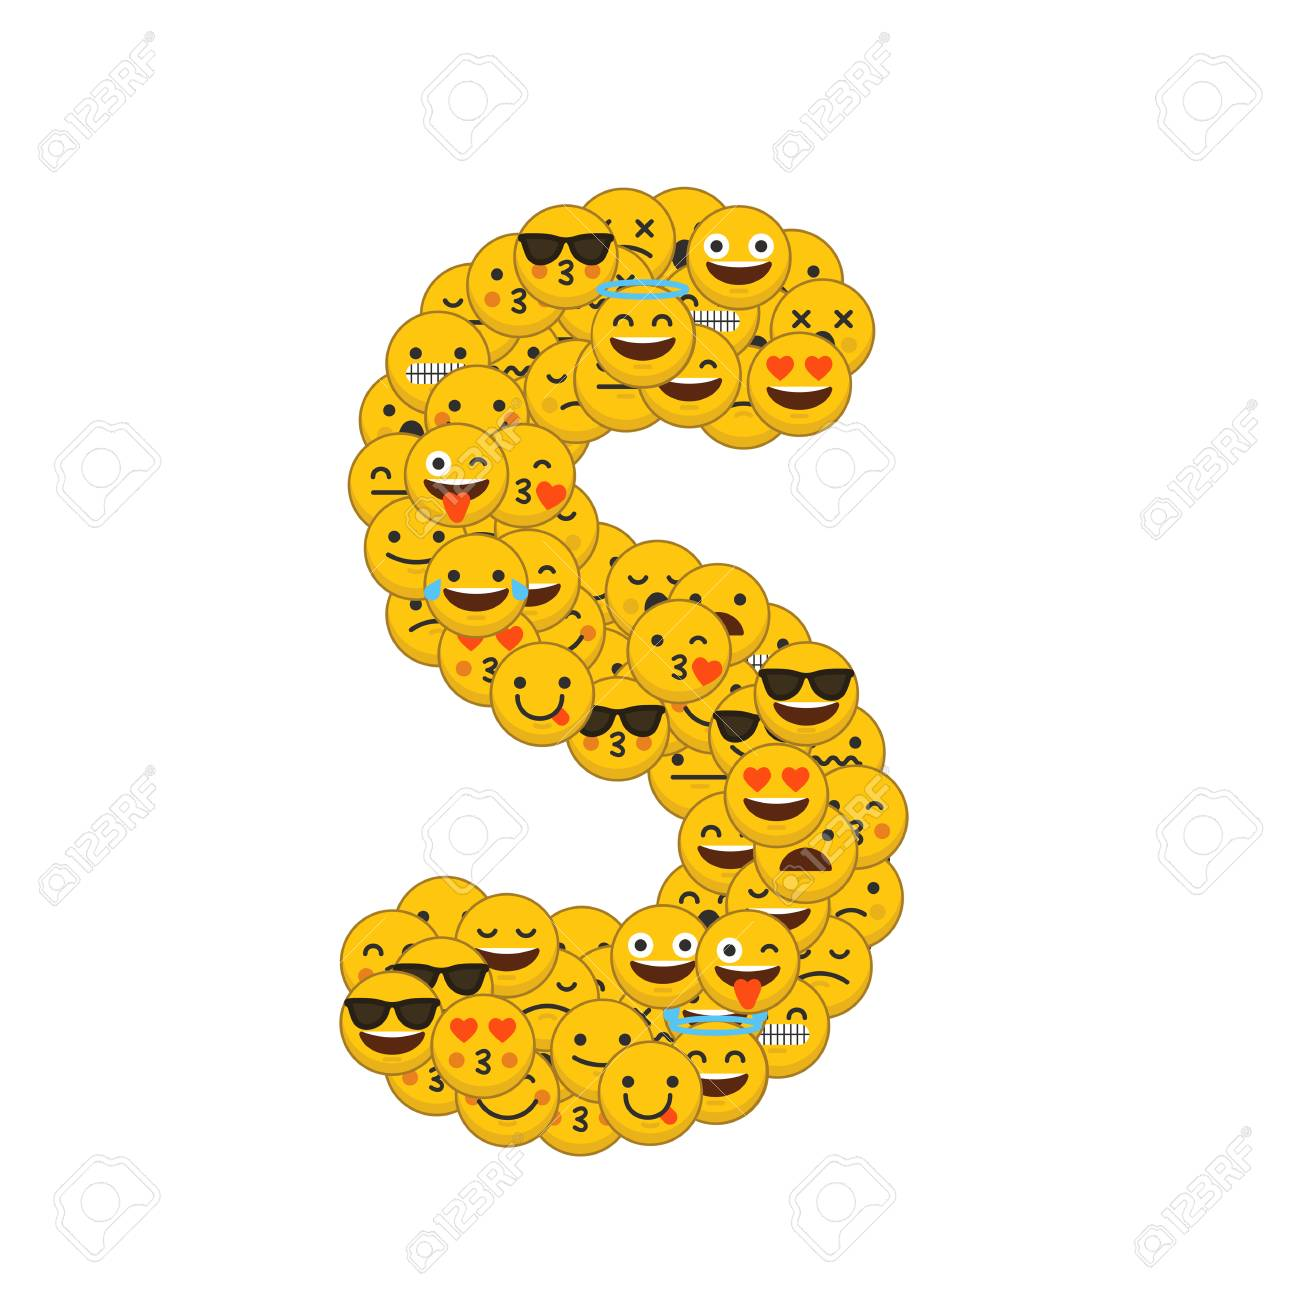 emoji smiley characters capital letter s stock photo 93223529